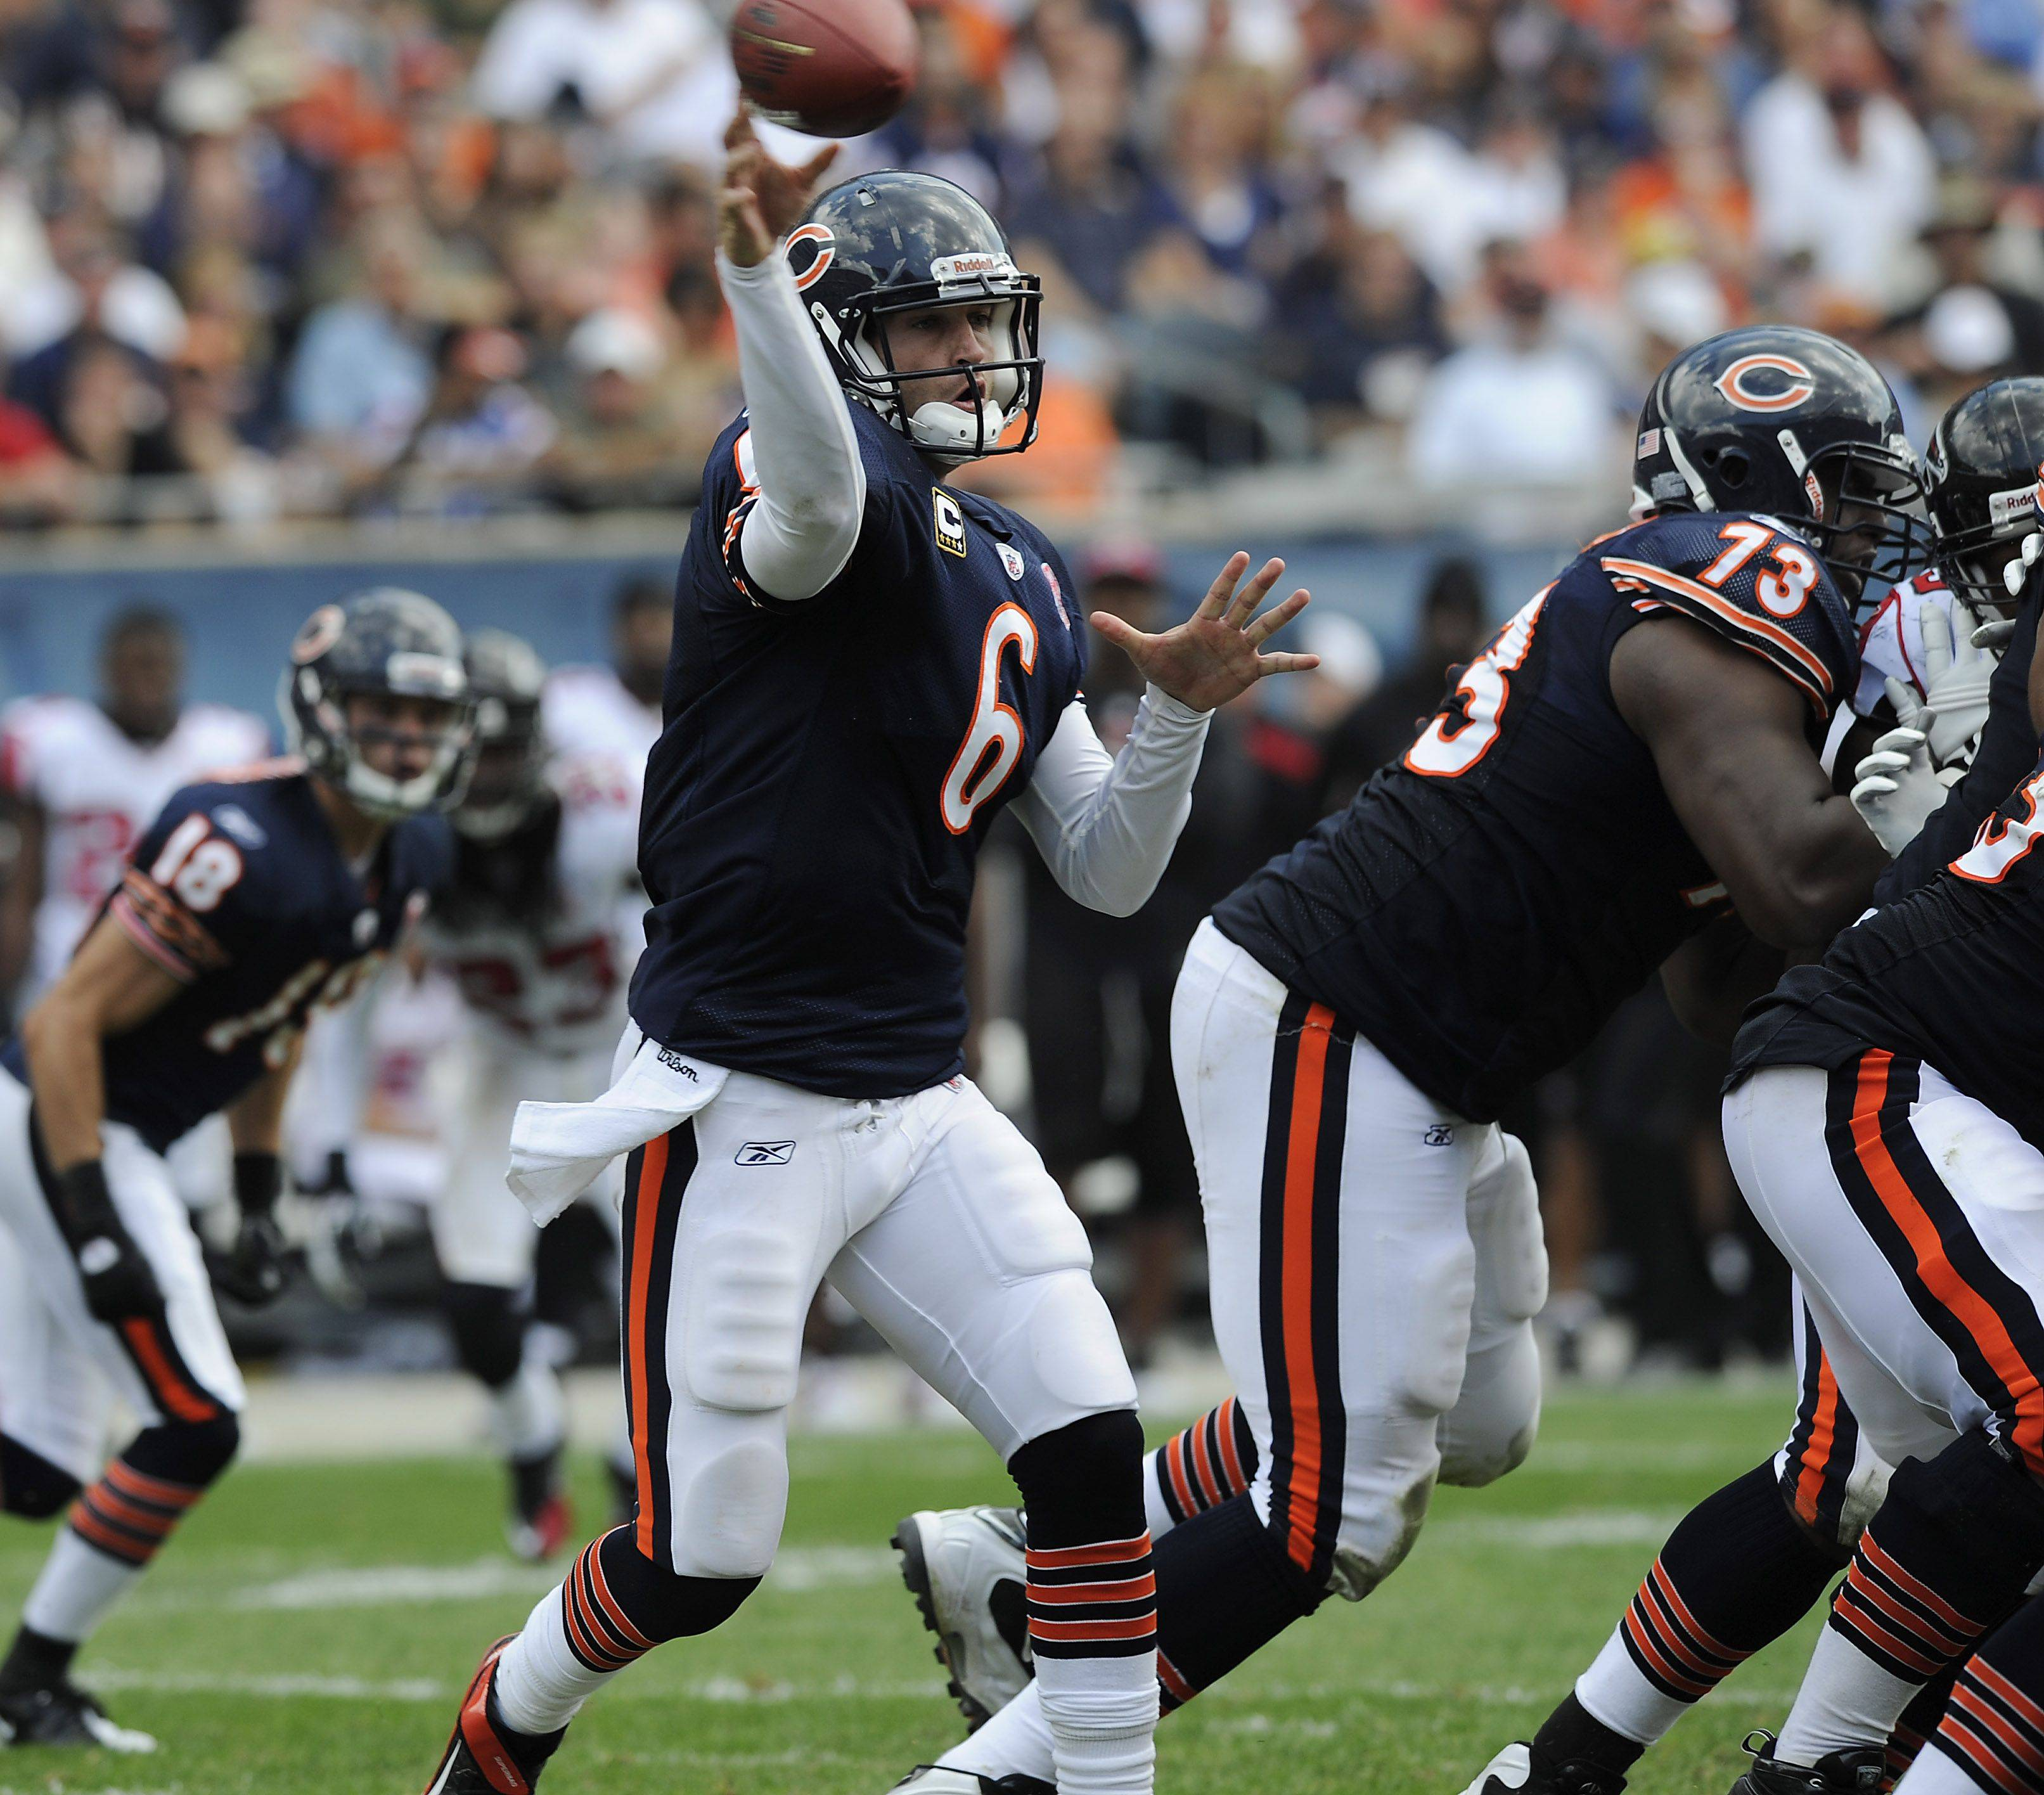 Jay Cutler fires to receiver Roy Williams during the fourth quarter of the Bears' victory at Soldier Field on Sunday. While Cutler was generally happy with the offense's performance, he also said the team should have put more points on the board.